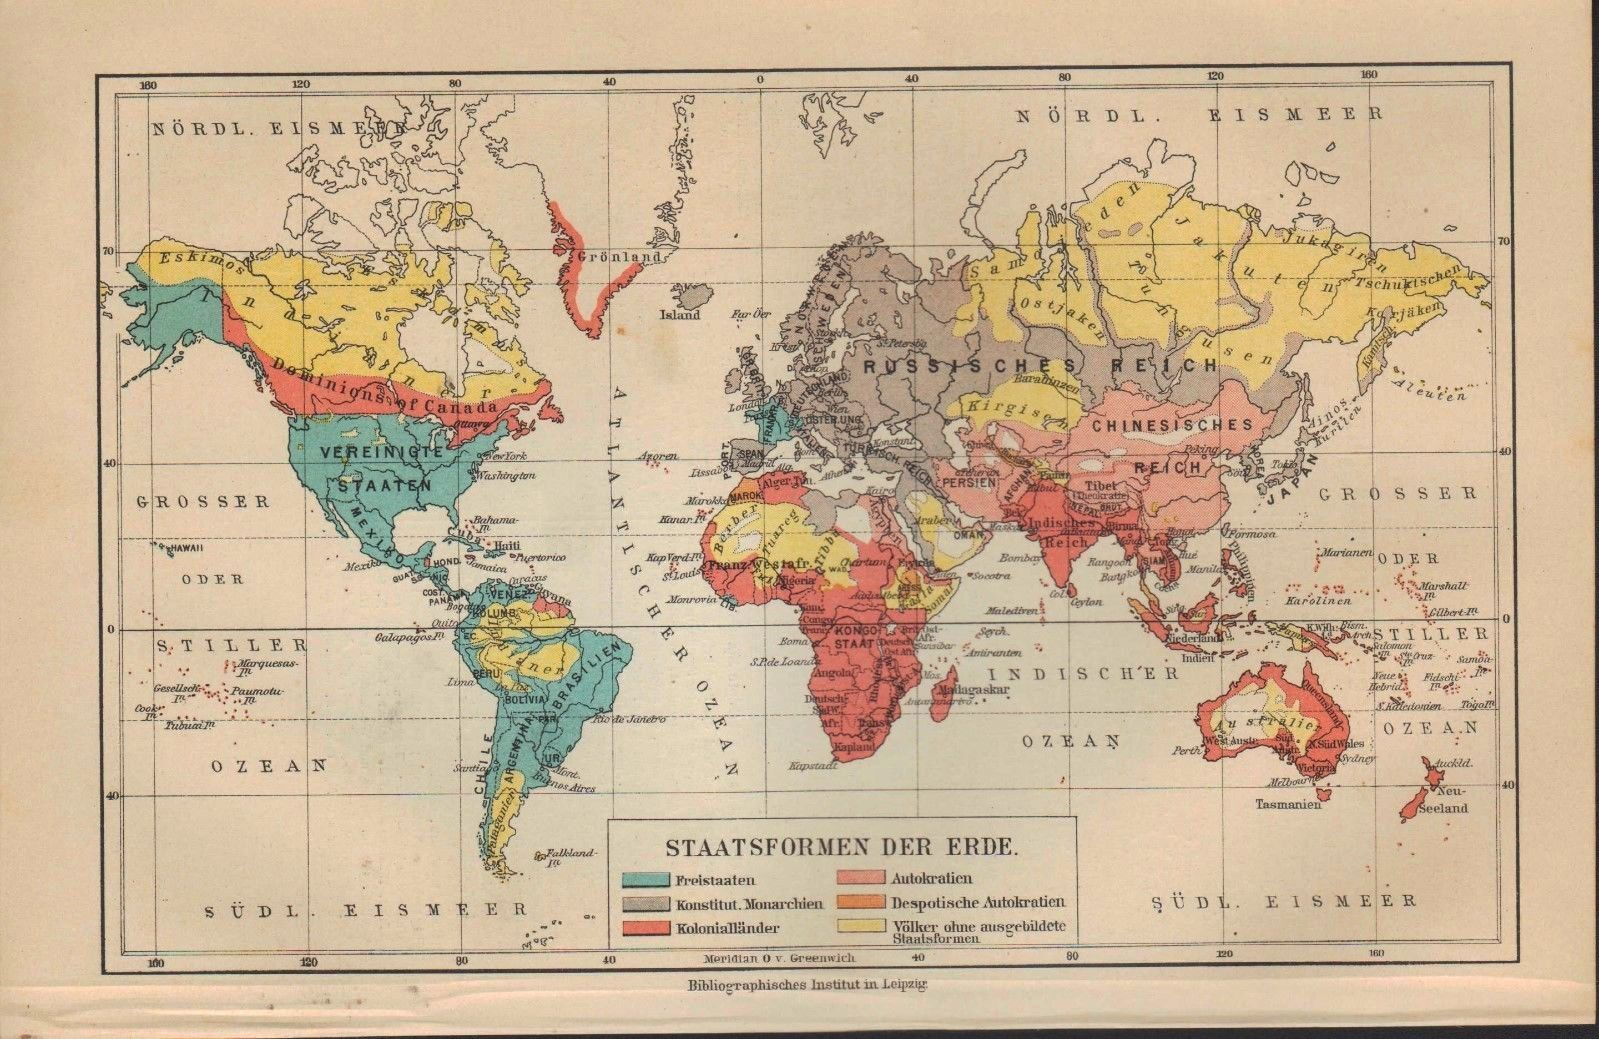 Forms of government around the world (1910 German map